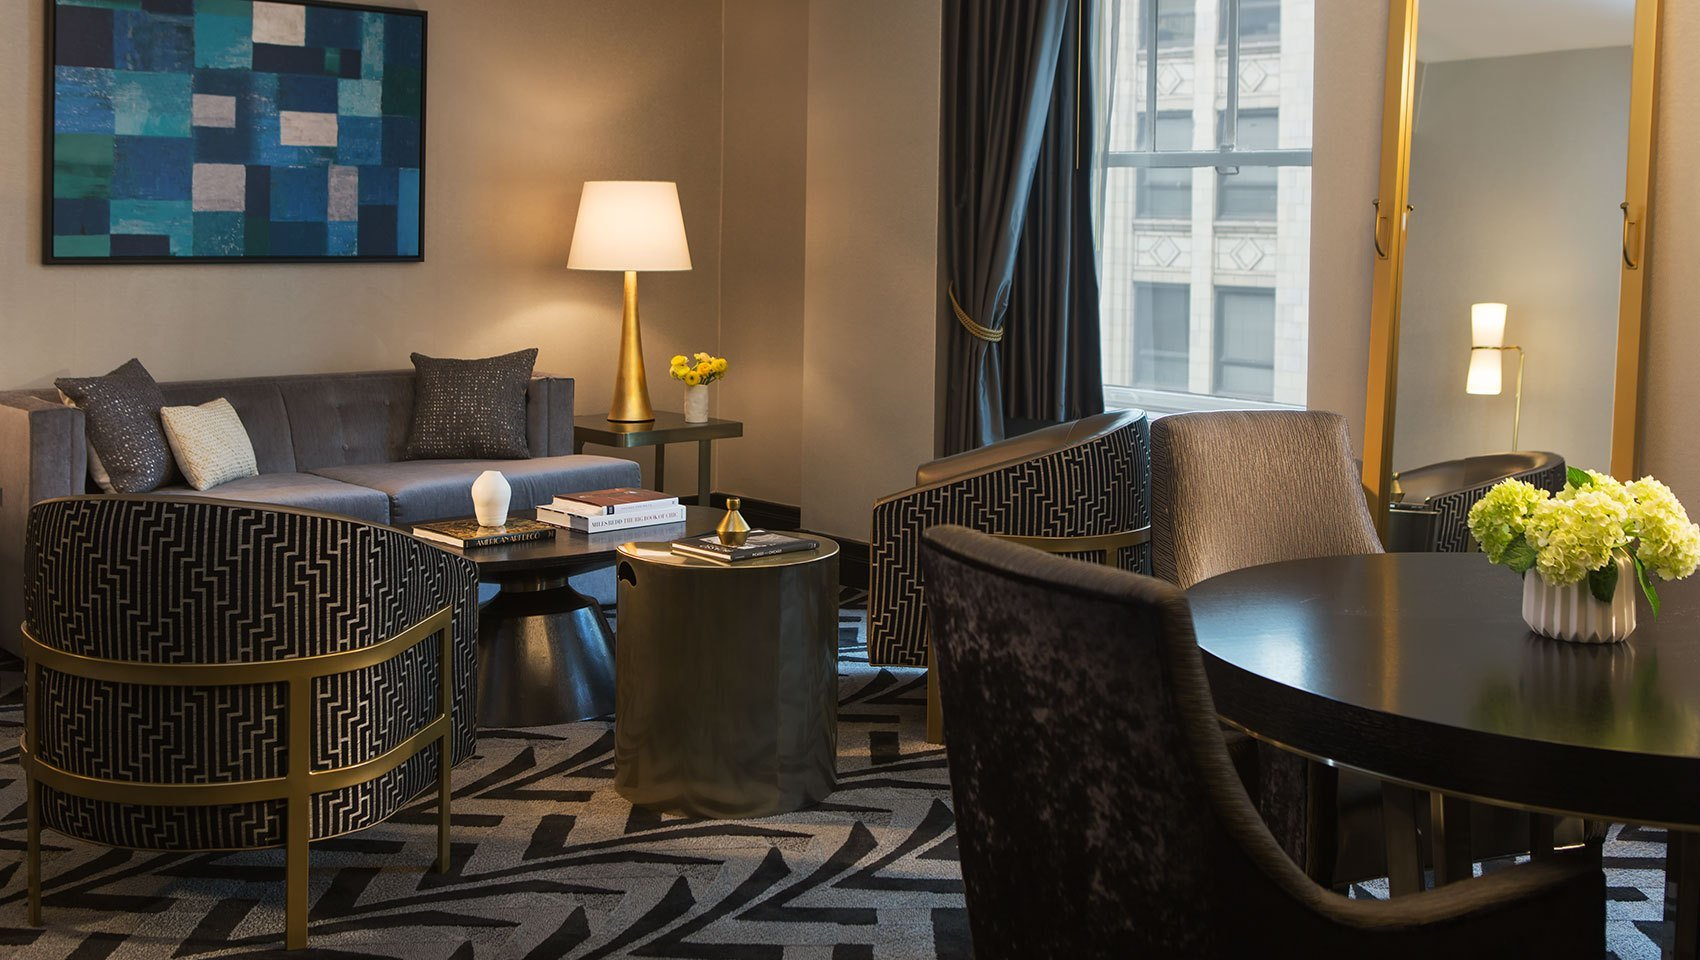 Best Hotel 2 Bedroom Suites Chicago Www Resnooze Com With Pictures